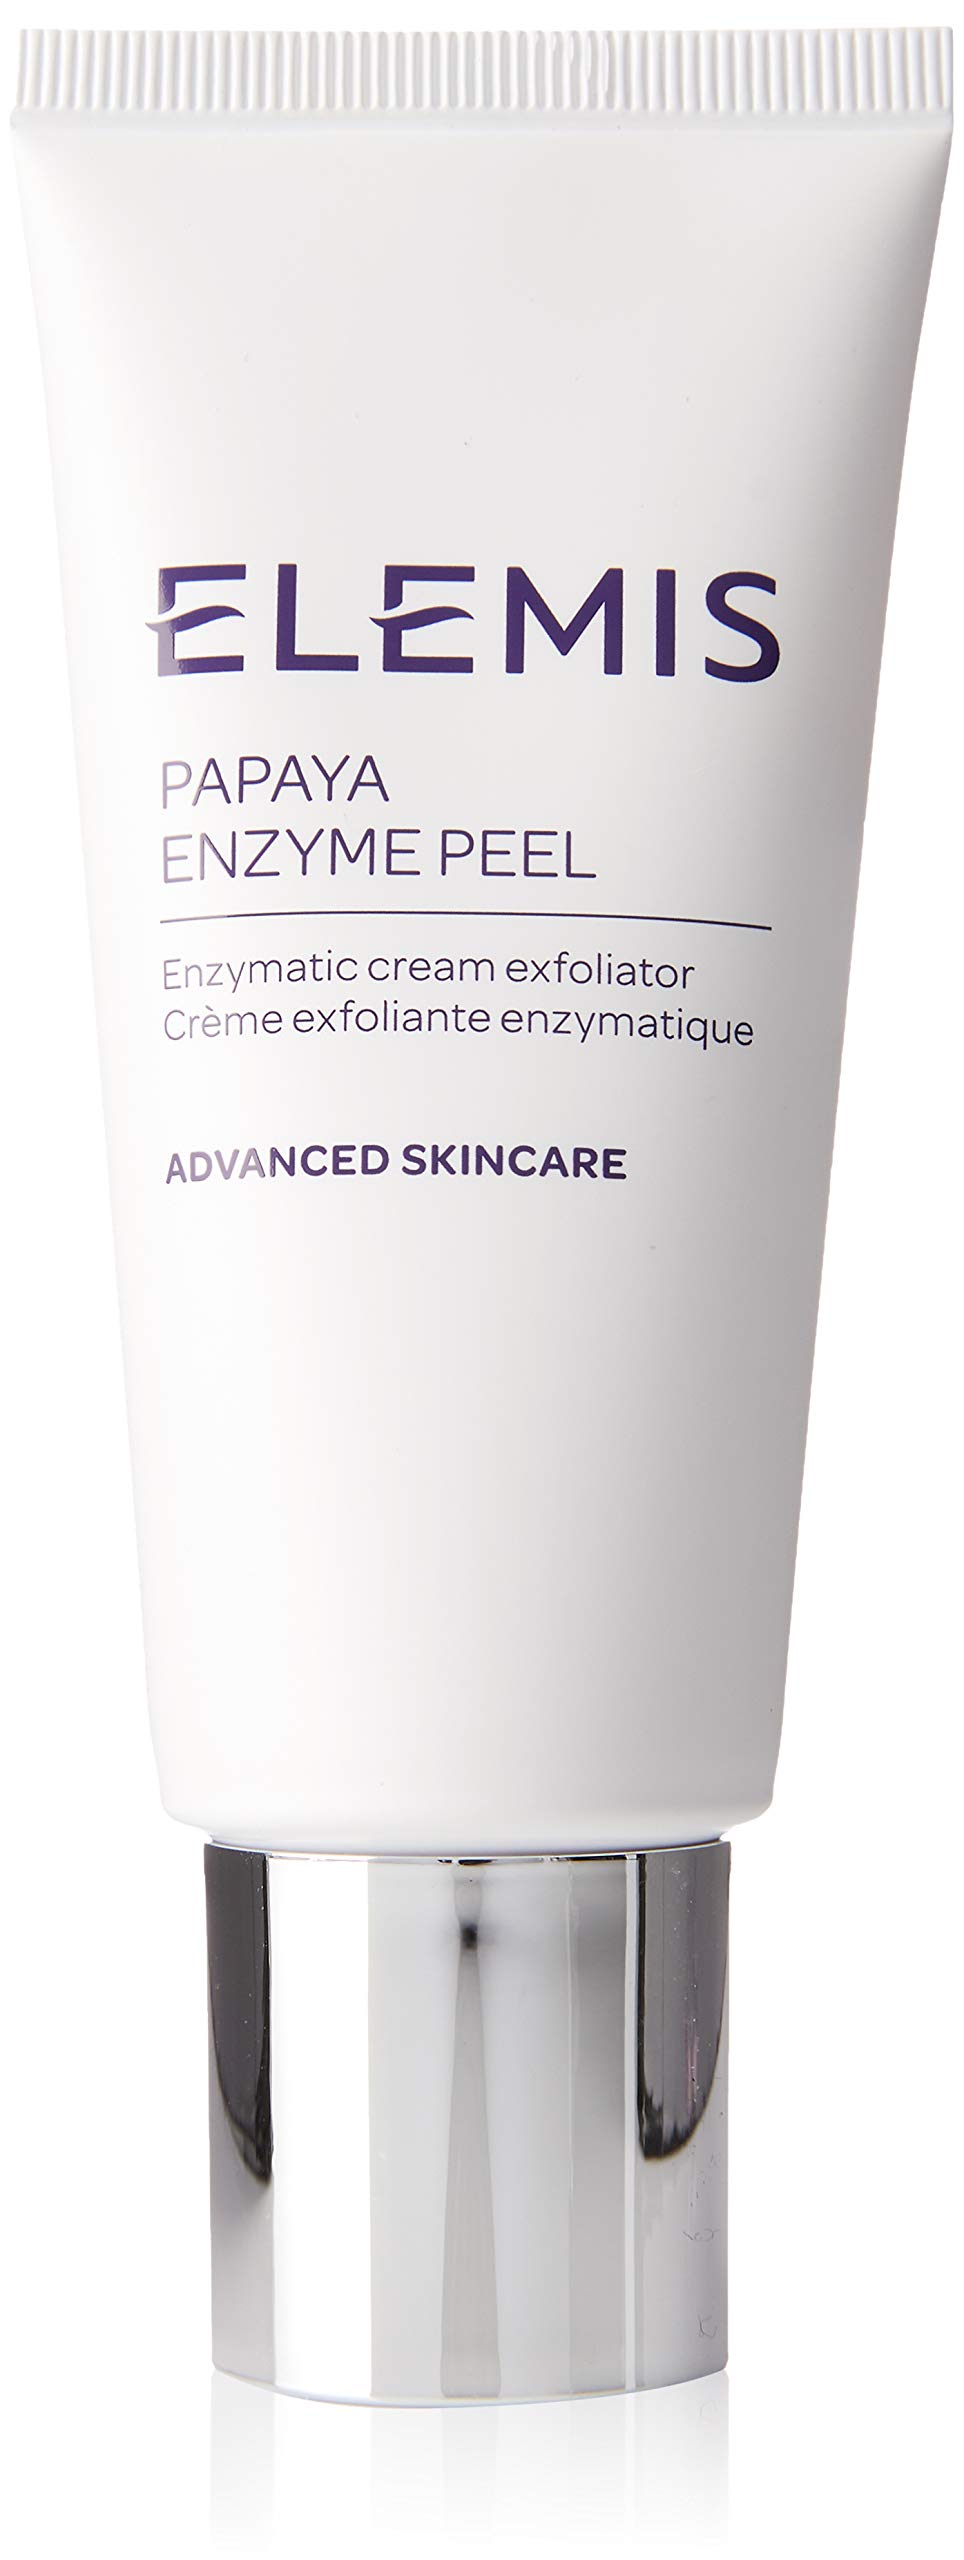 Elemis Papaya Enzyme Peel, Enzymatic Cream Exfoliator, 50 ml